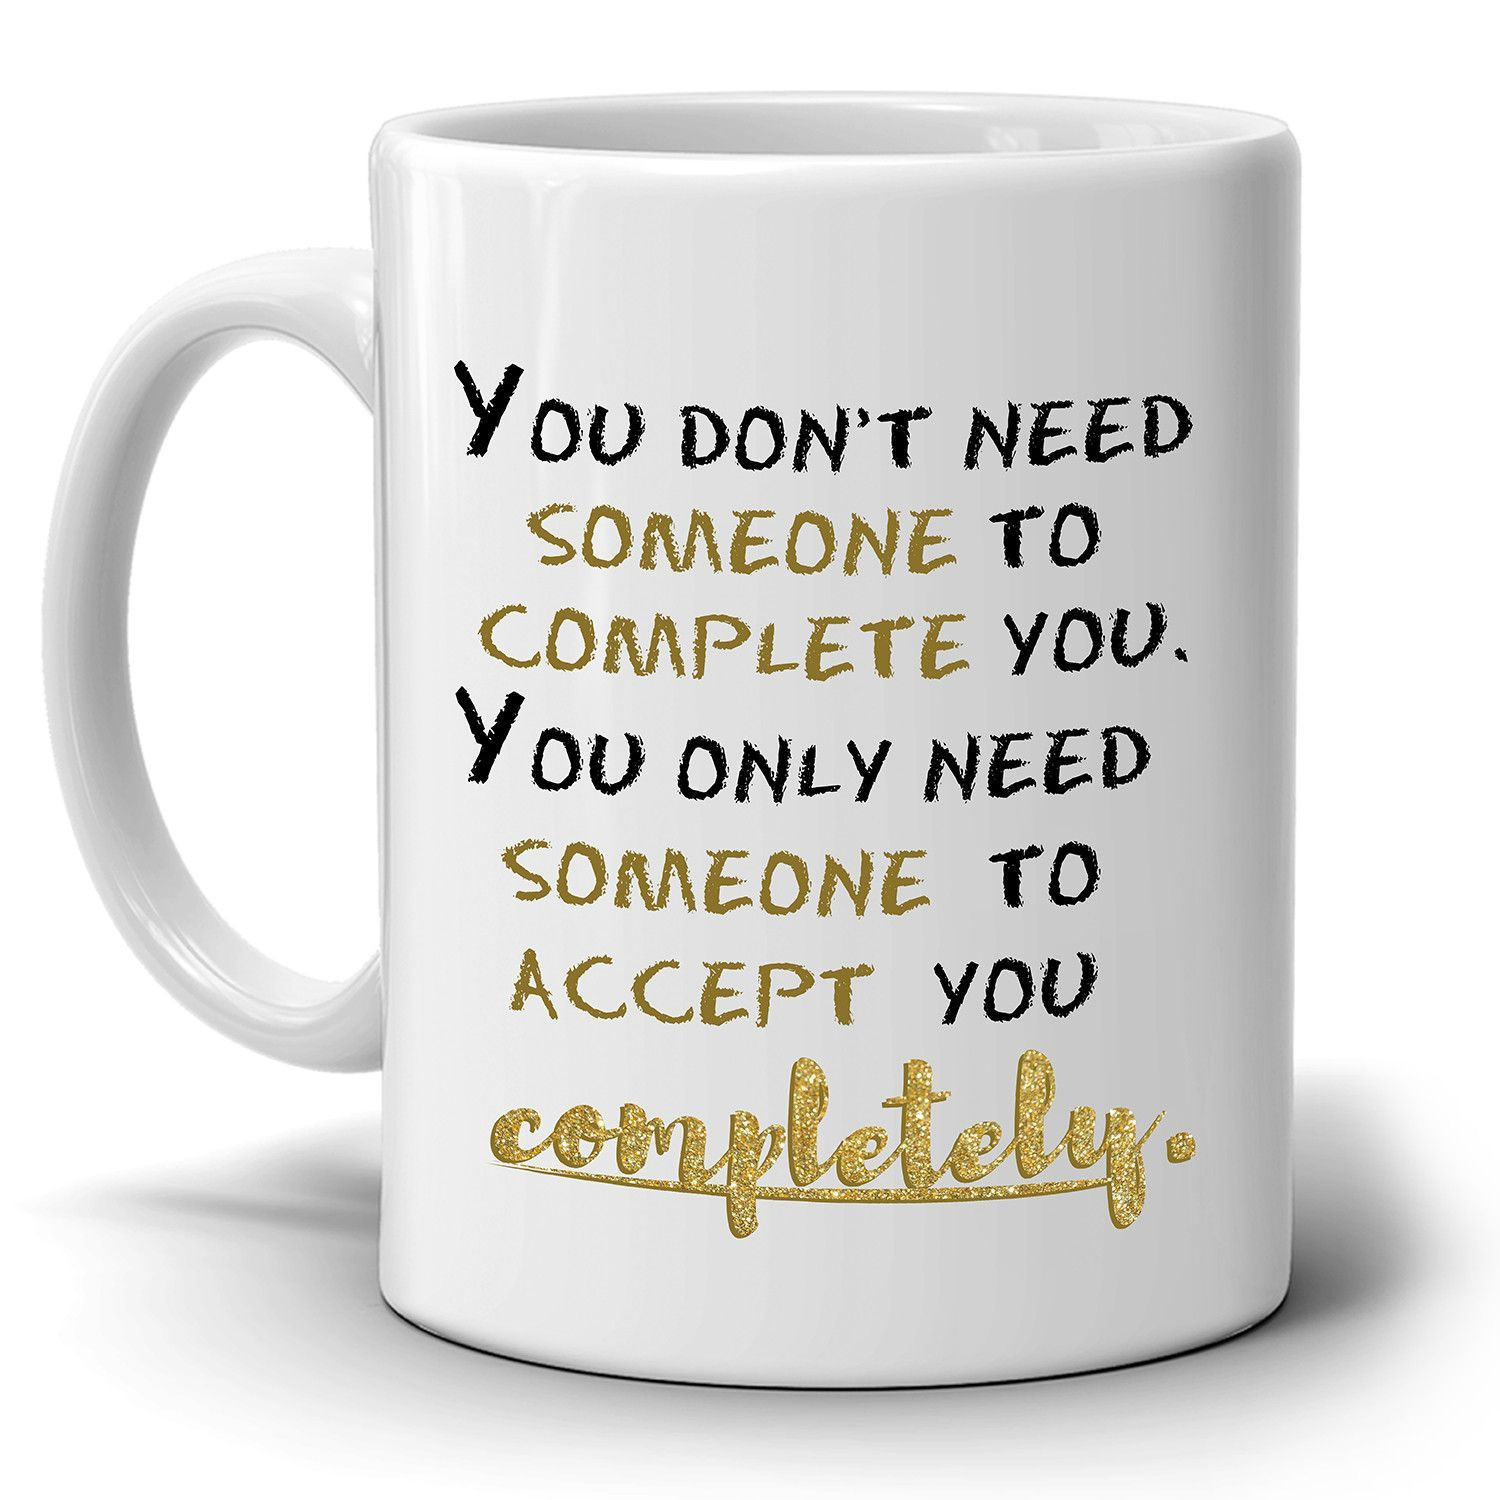 Couples Gift Ideas For Him  Romantic Gifts for Him and Her Coffee Mug Perfect for